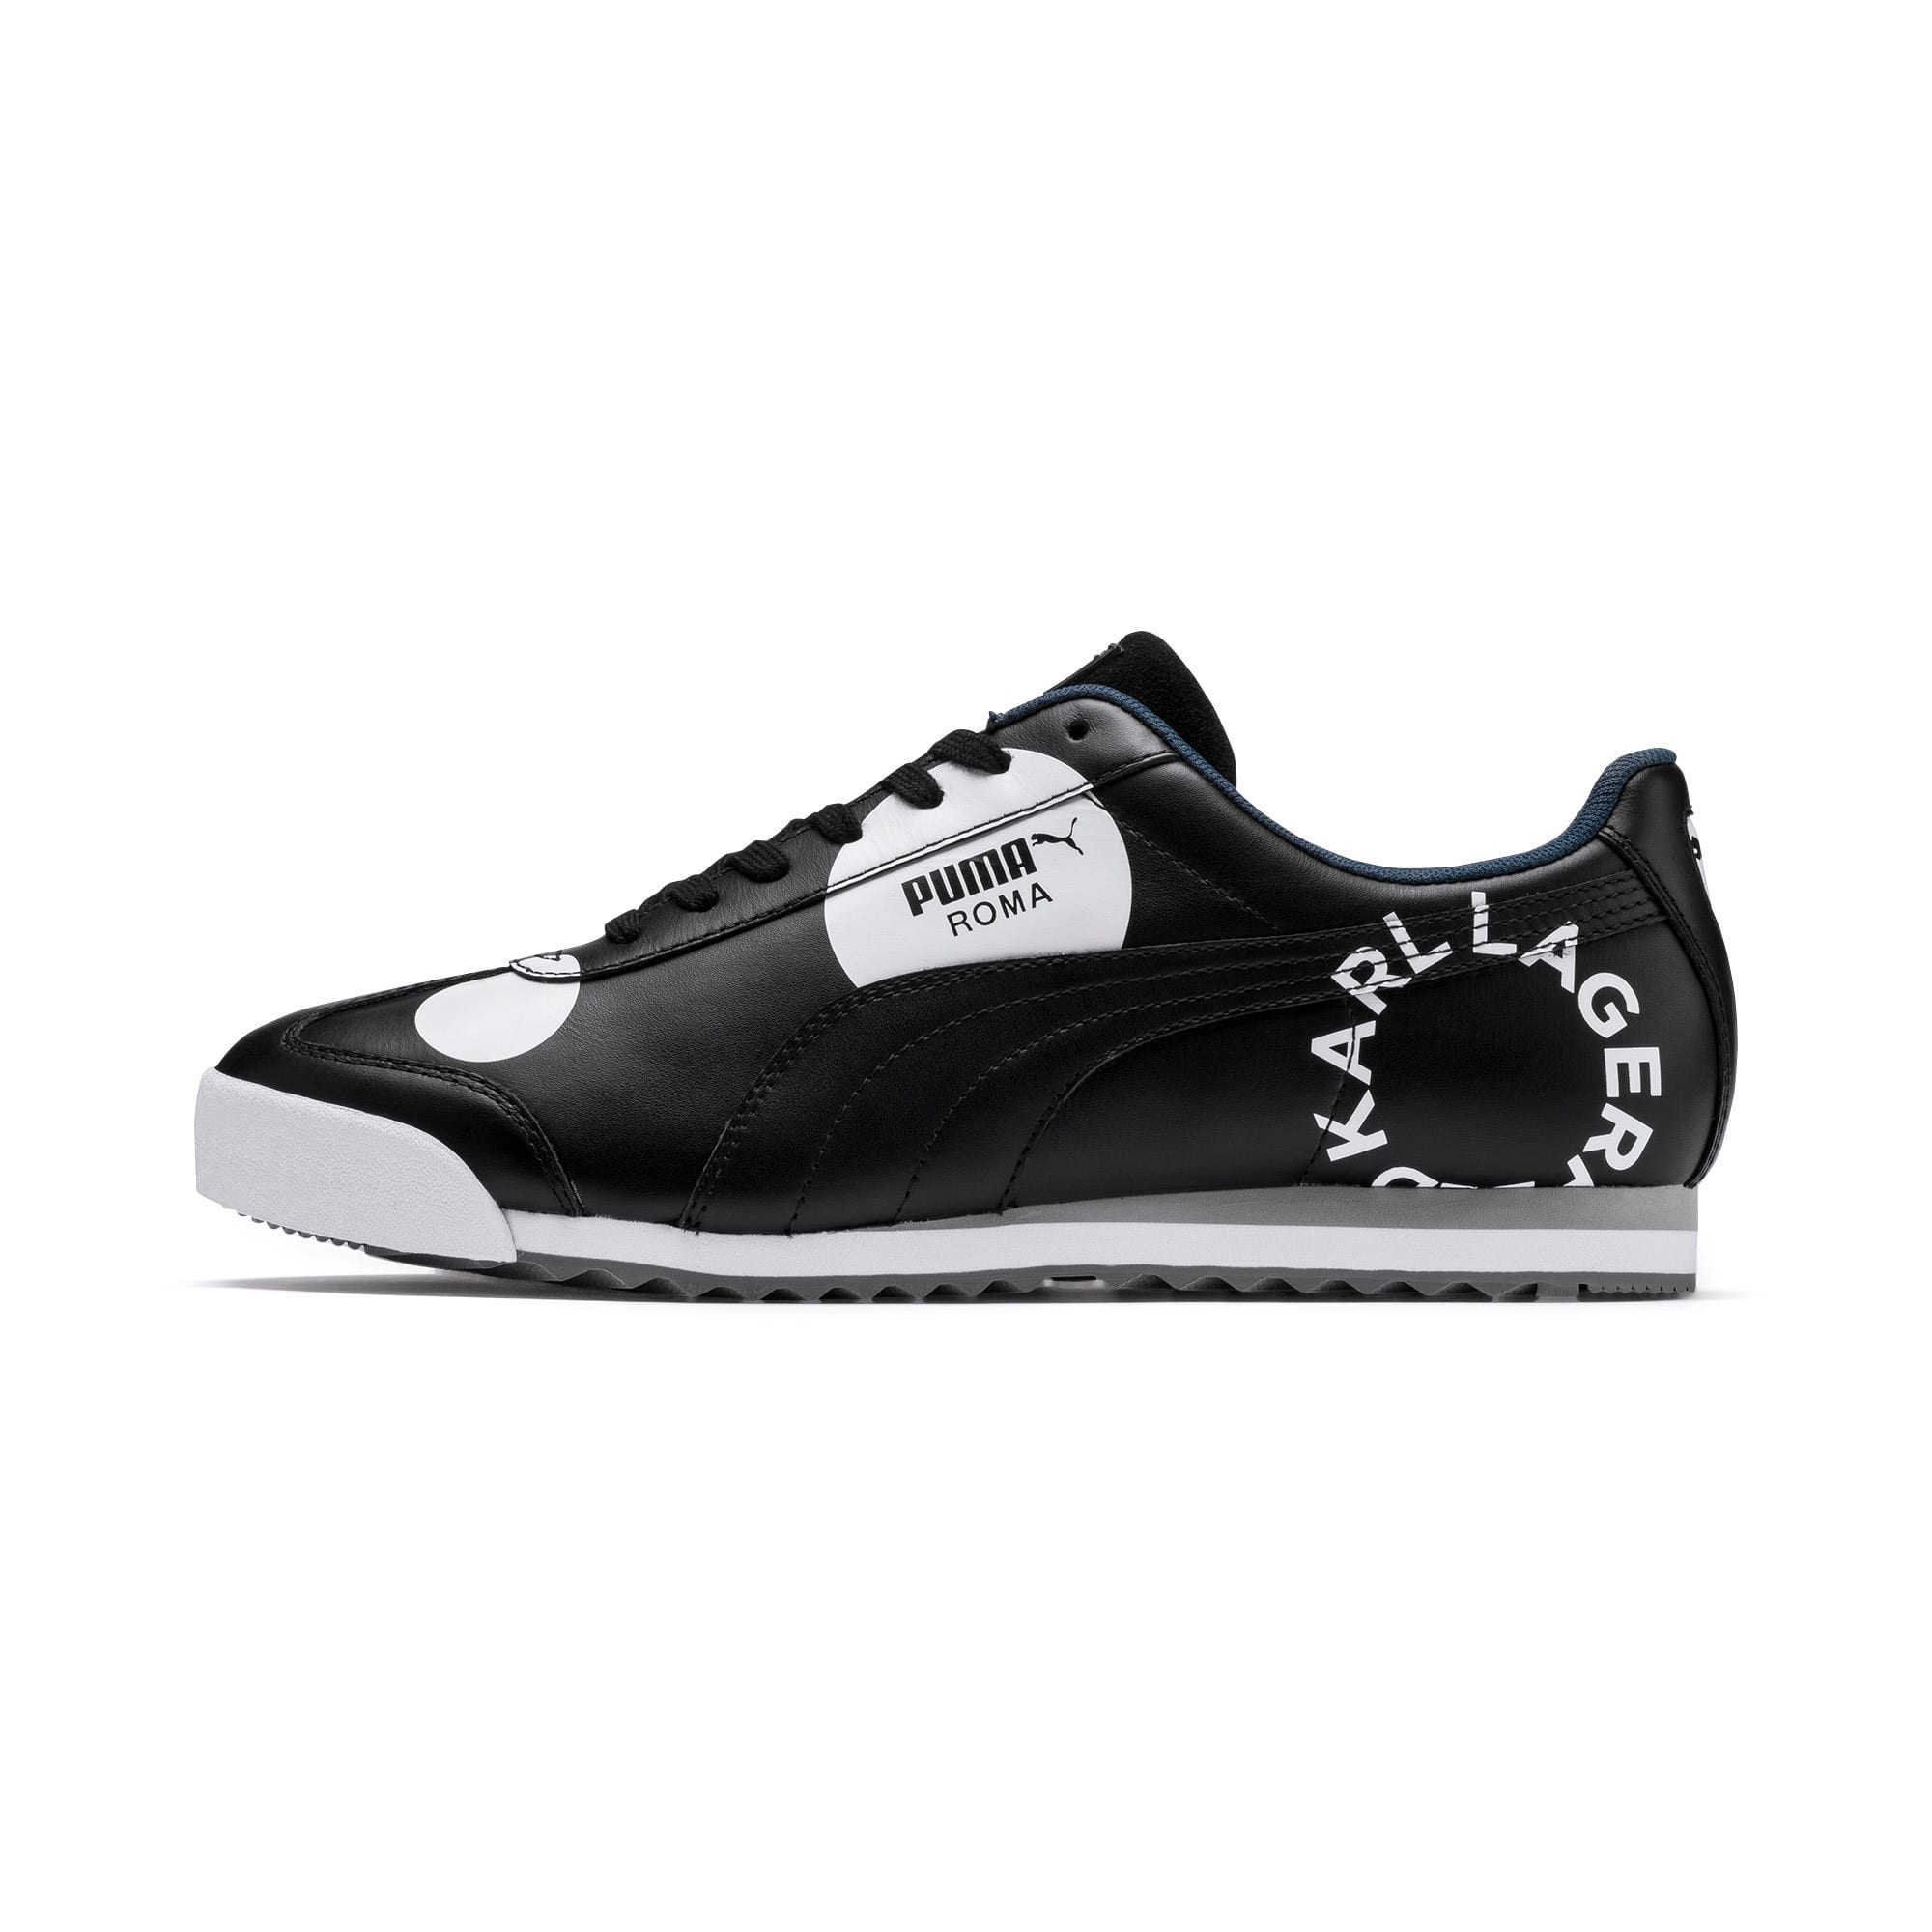 Thumbnail 1 of Zapatillas Roma PUMA x KARL LAGERFELD, Puma Black, medium